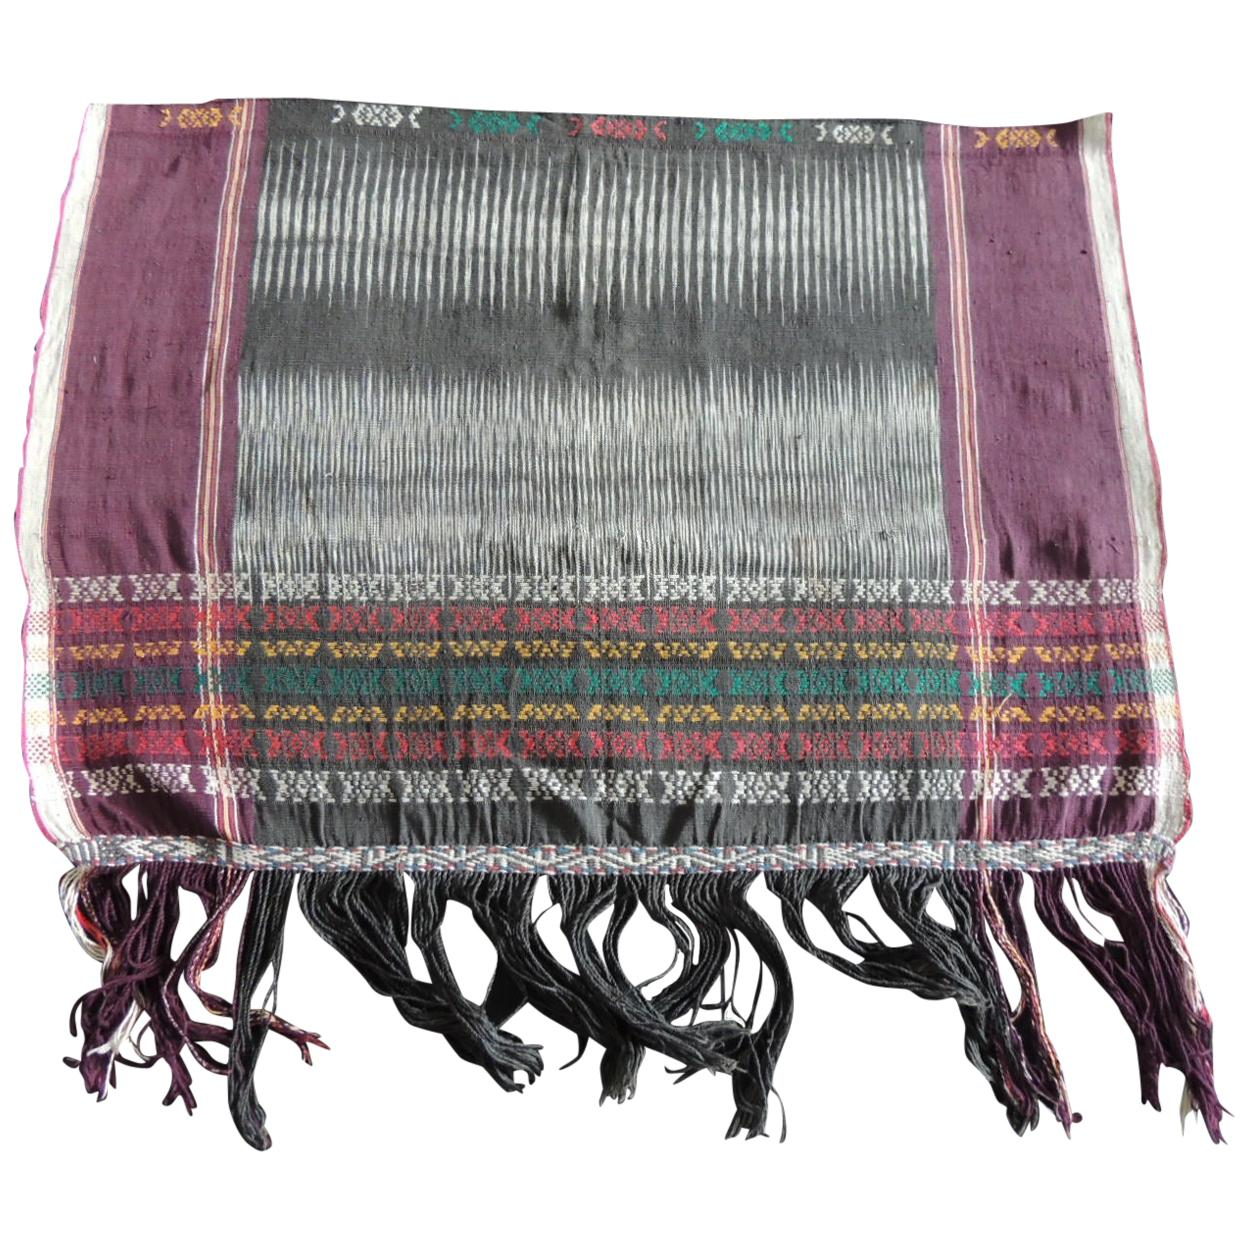 Vintage Purple and Black Woven Ikat Textile Fragment with Fringes